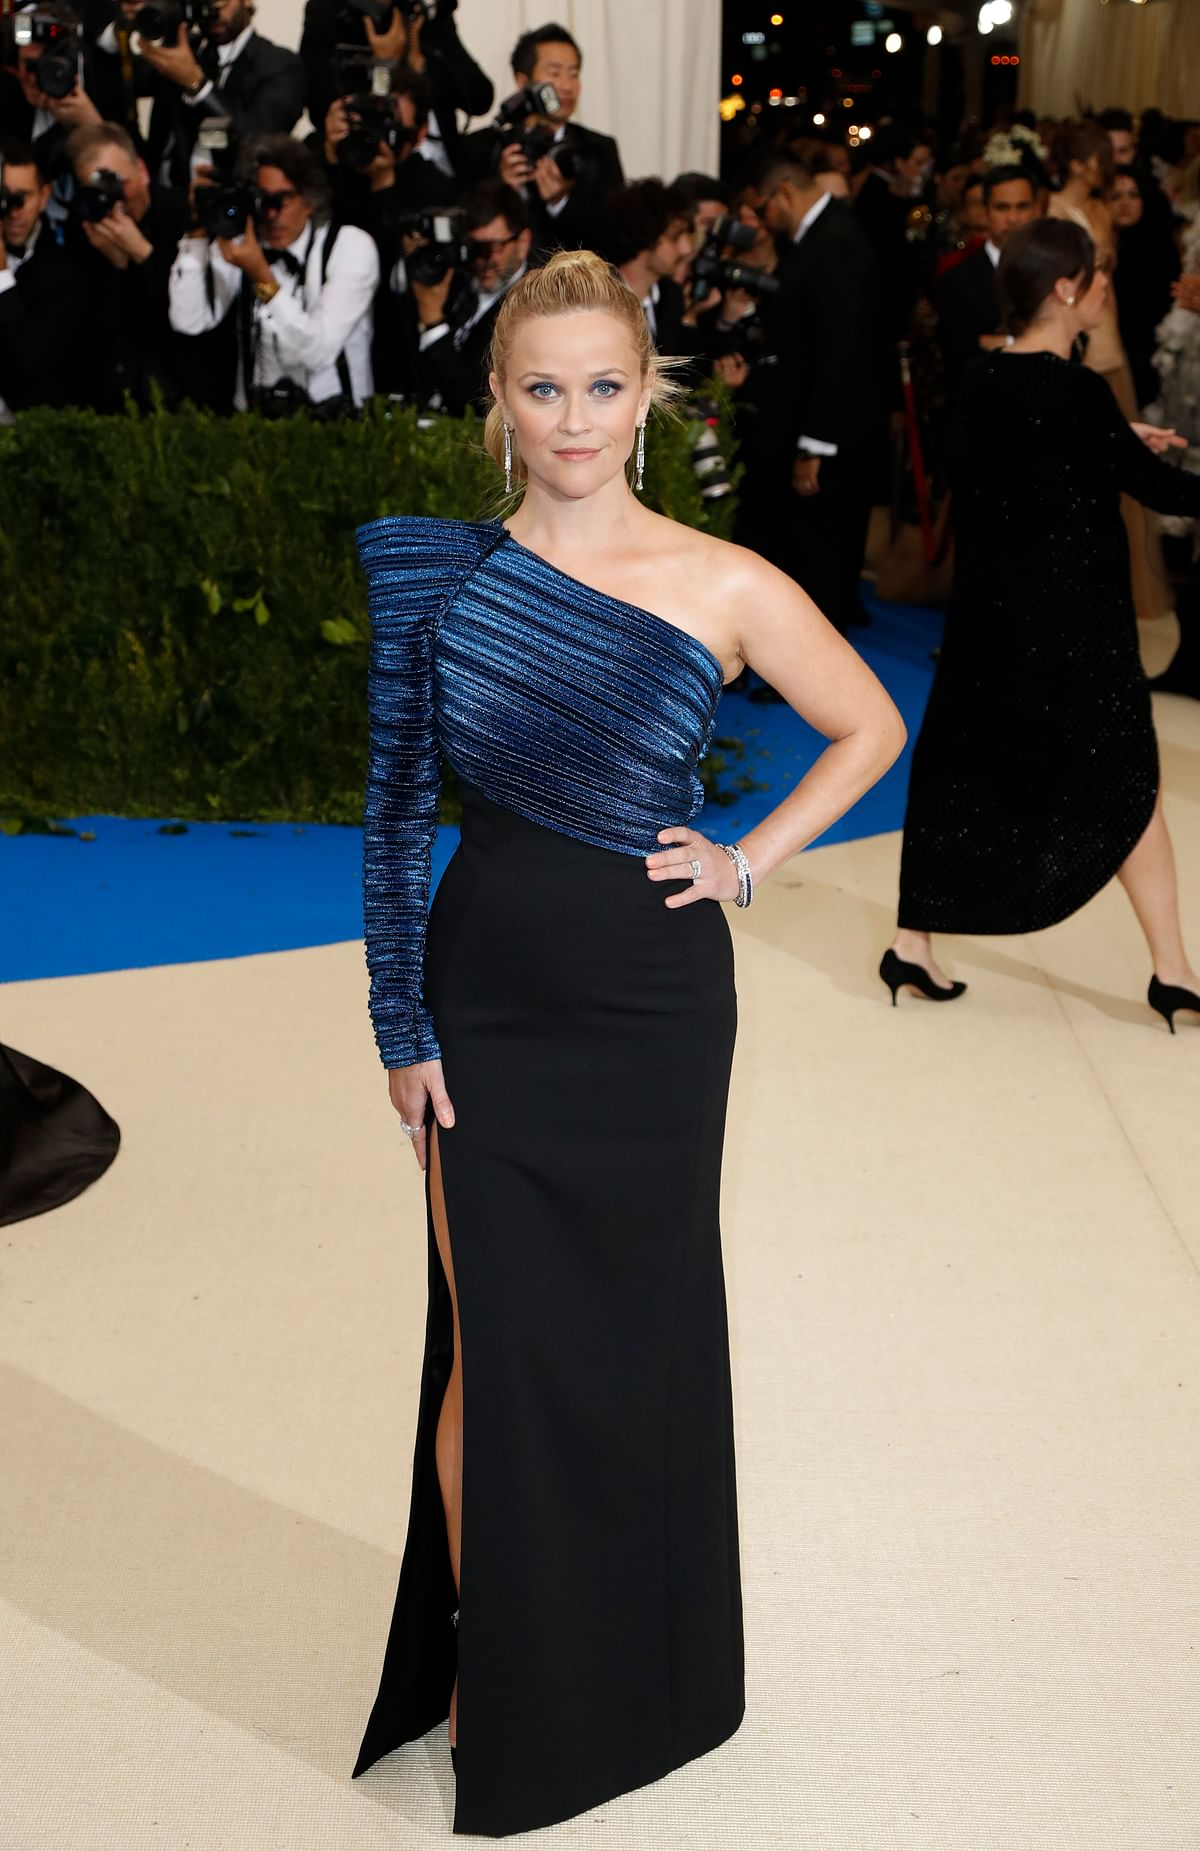 Reese Witherspoon has a hint of the edgy in her look. (Photo: Reuters)